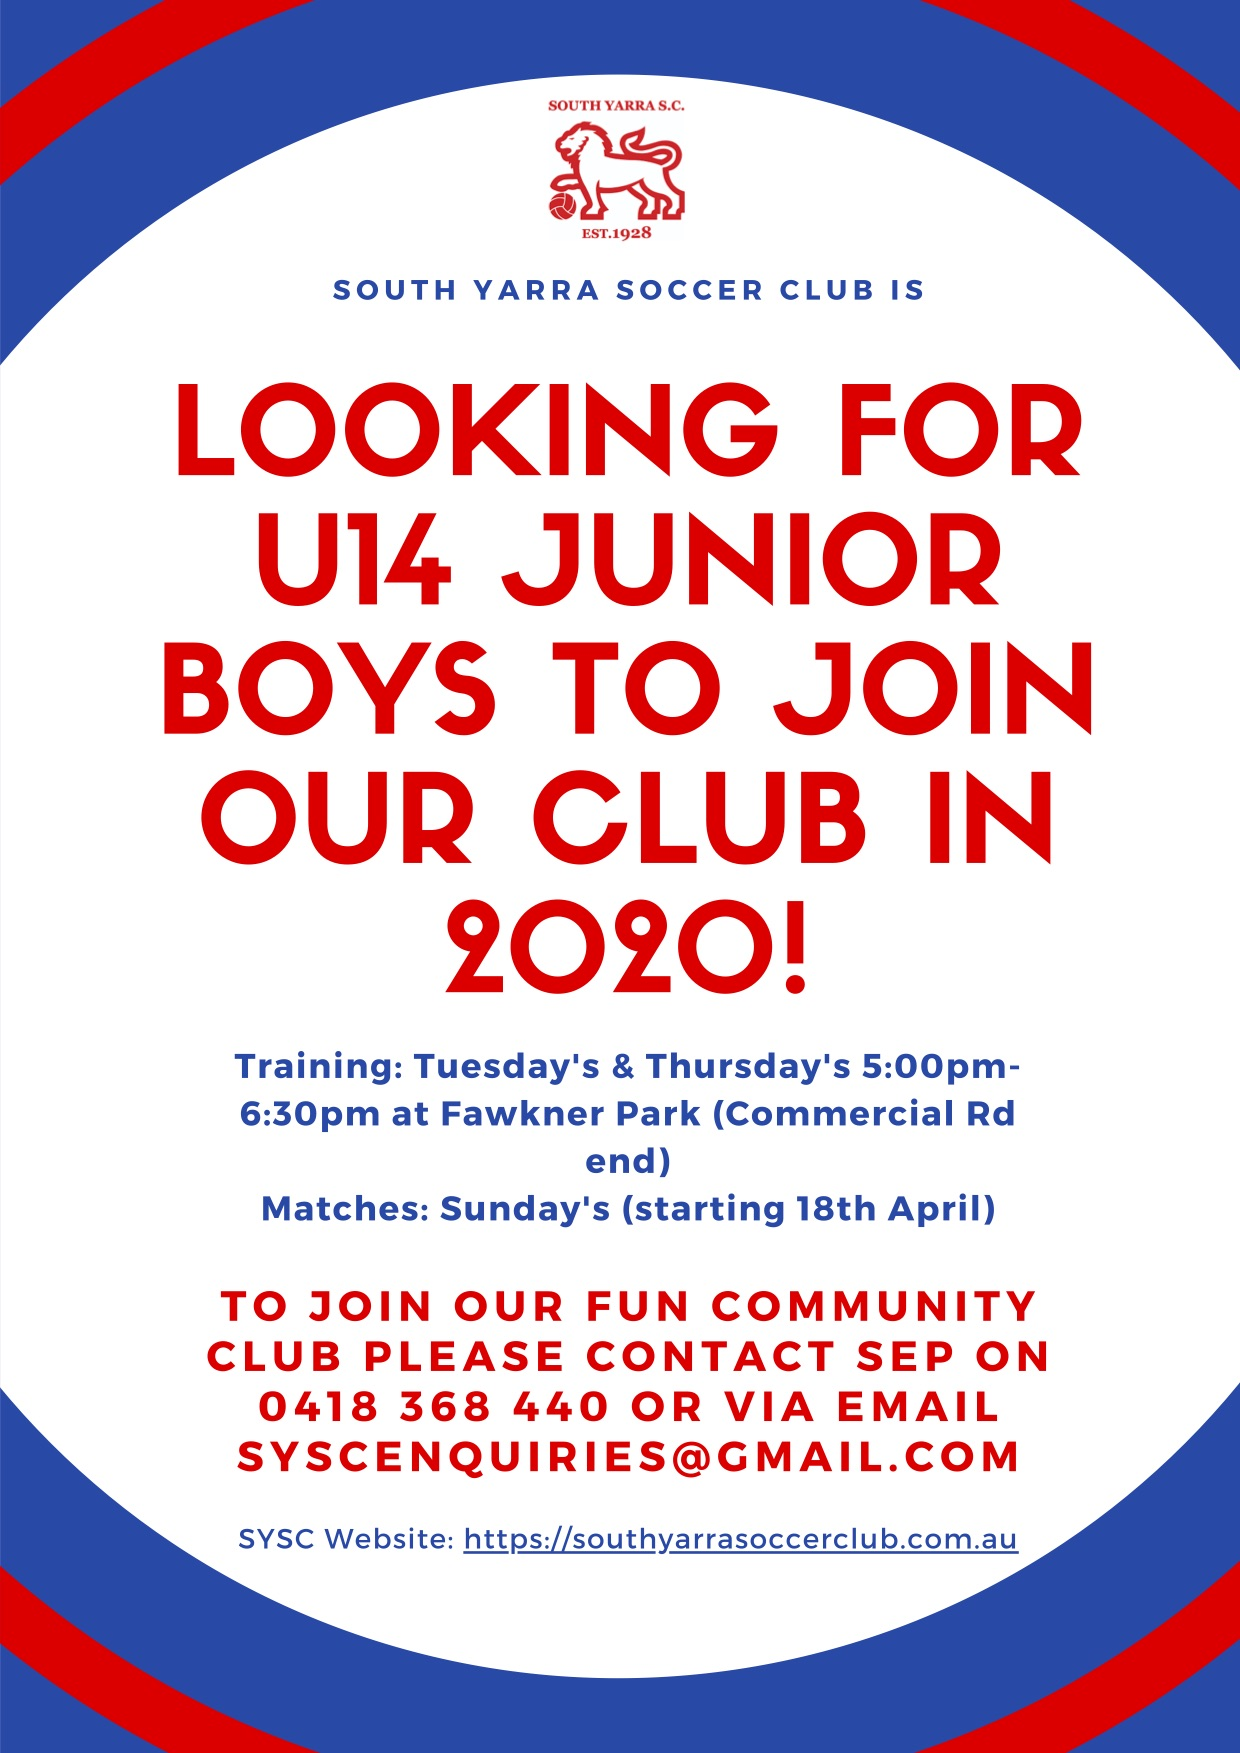 SYSC is on the lookout for U14 Junior Boys to join our Club!